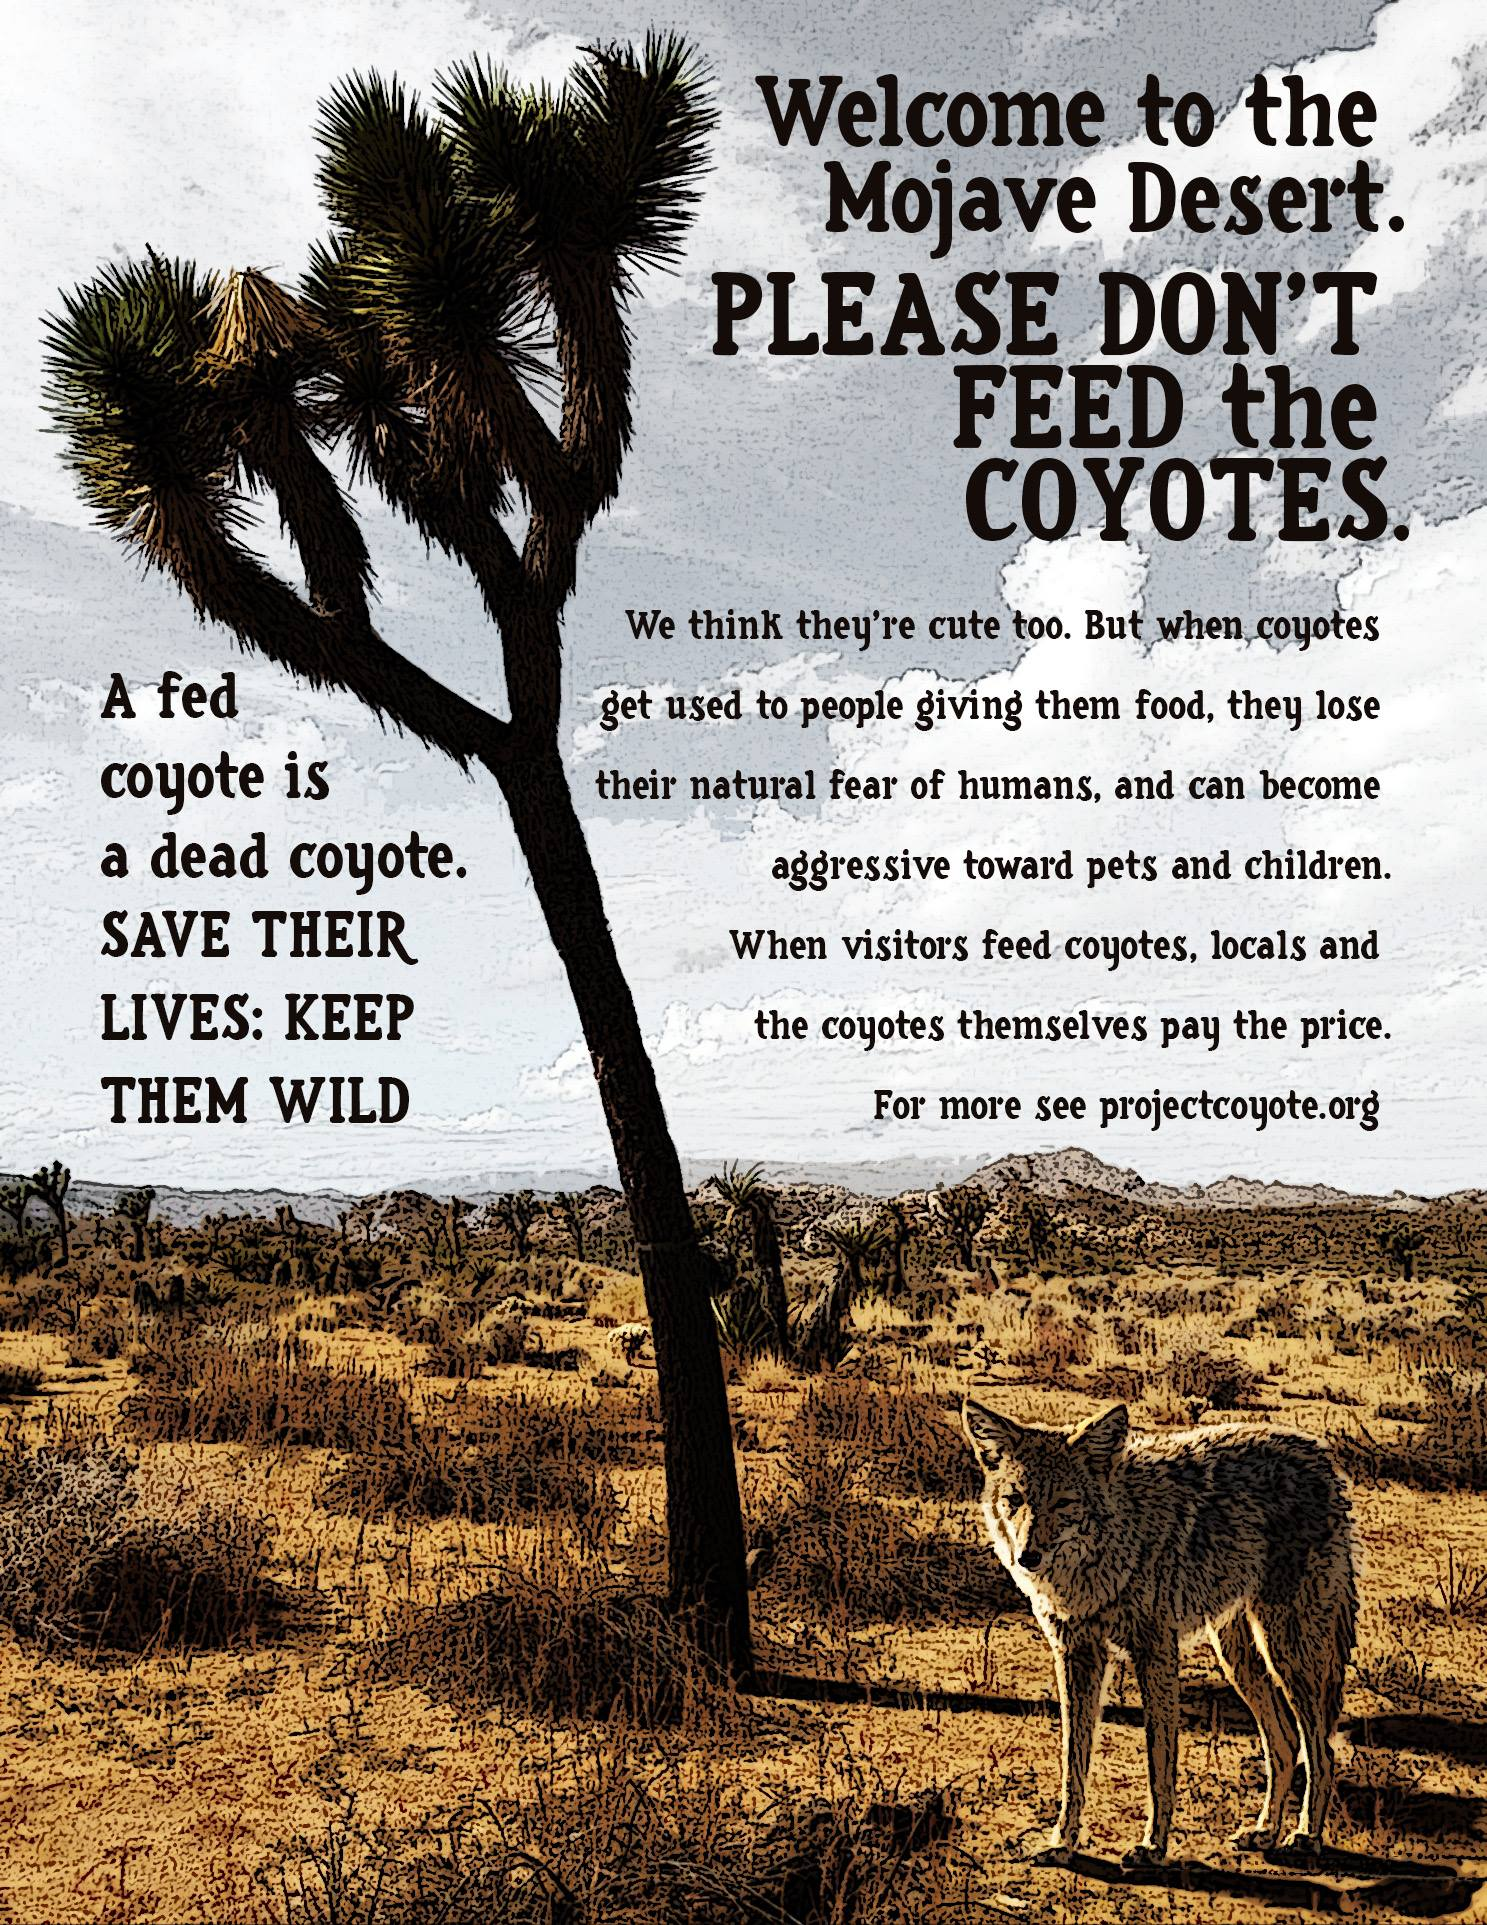 Dont_feed_coyotes_poster__Chris_Clarke.jpg